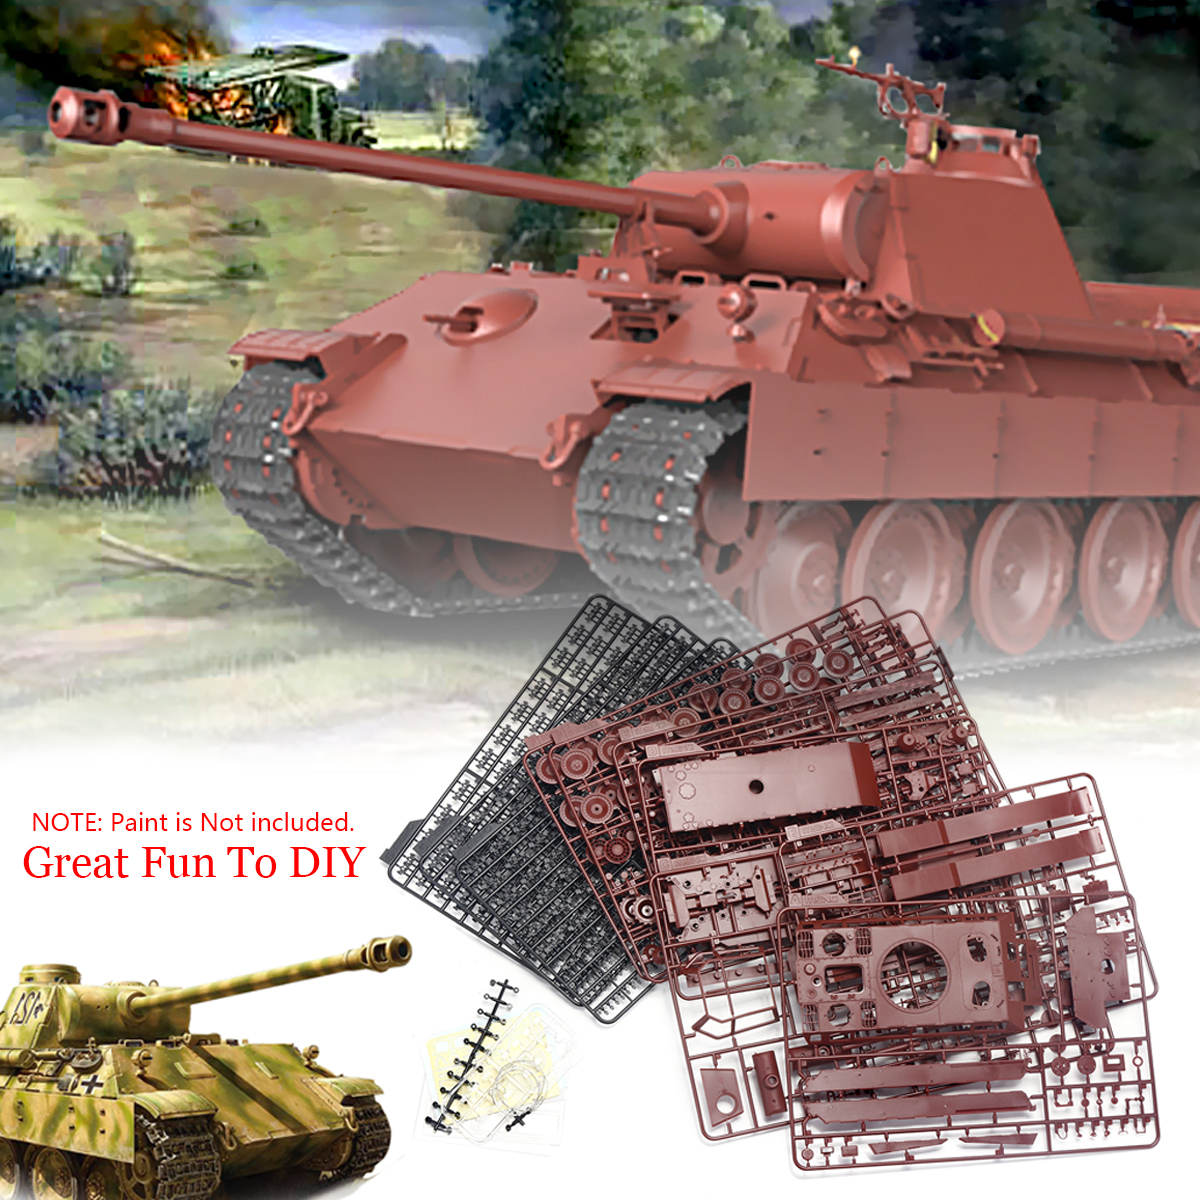 DIY Toy Kit For Meng TS 035 Sd.Kfz.171 Panther Ausf.A Late WWII Military Tank Model Building Kits Creation 1:35 Great Fun